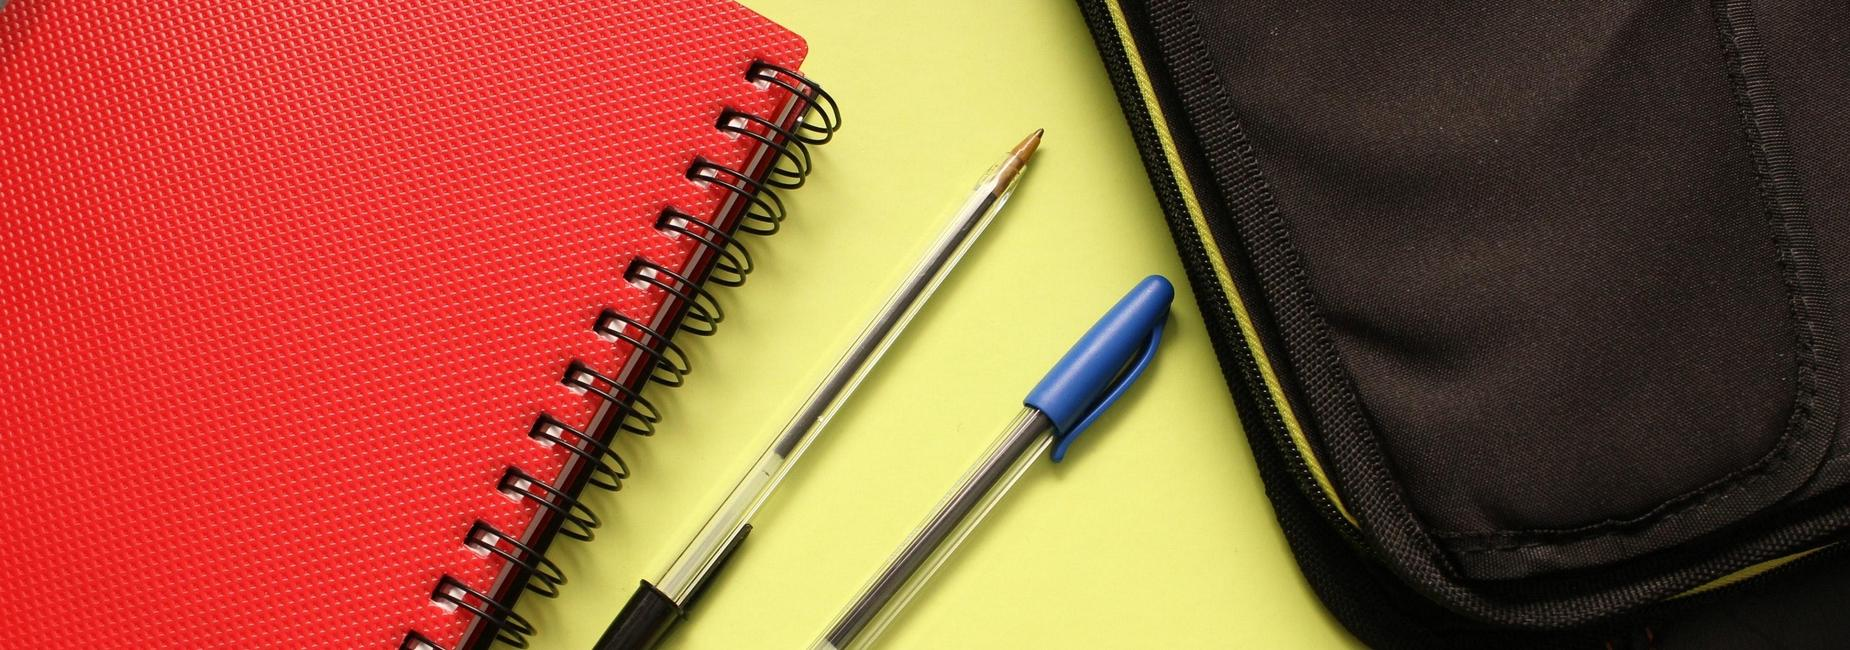 Photo of composition books and pens